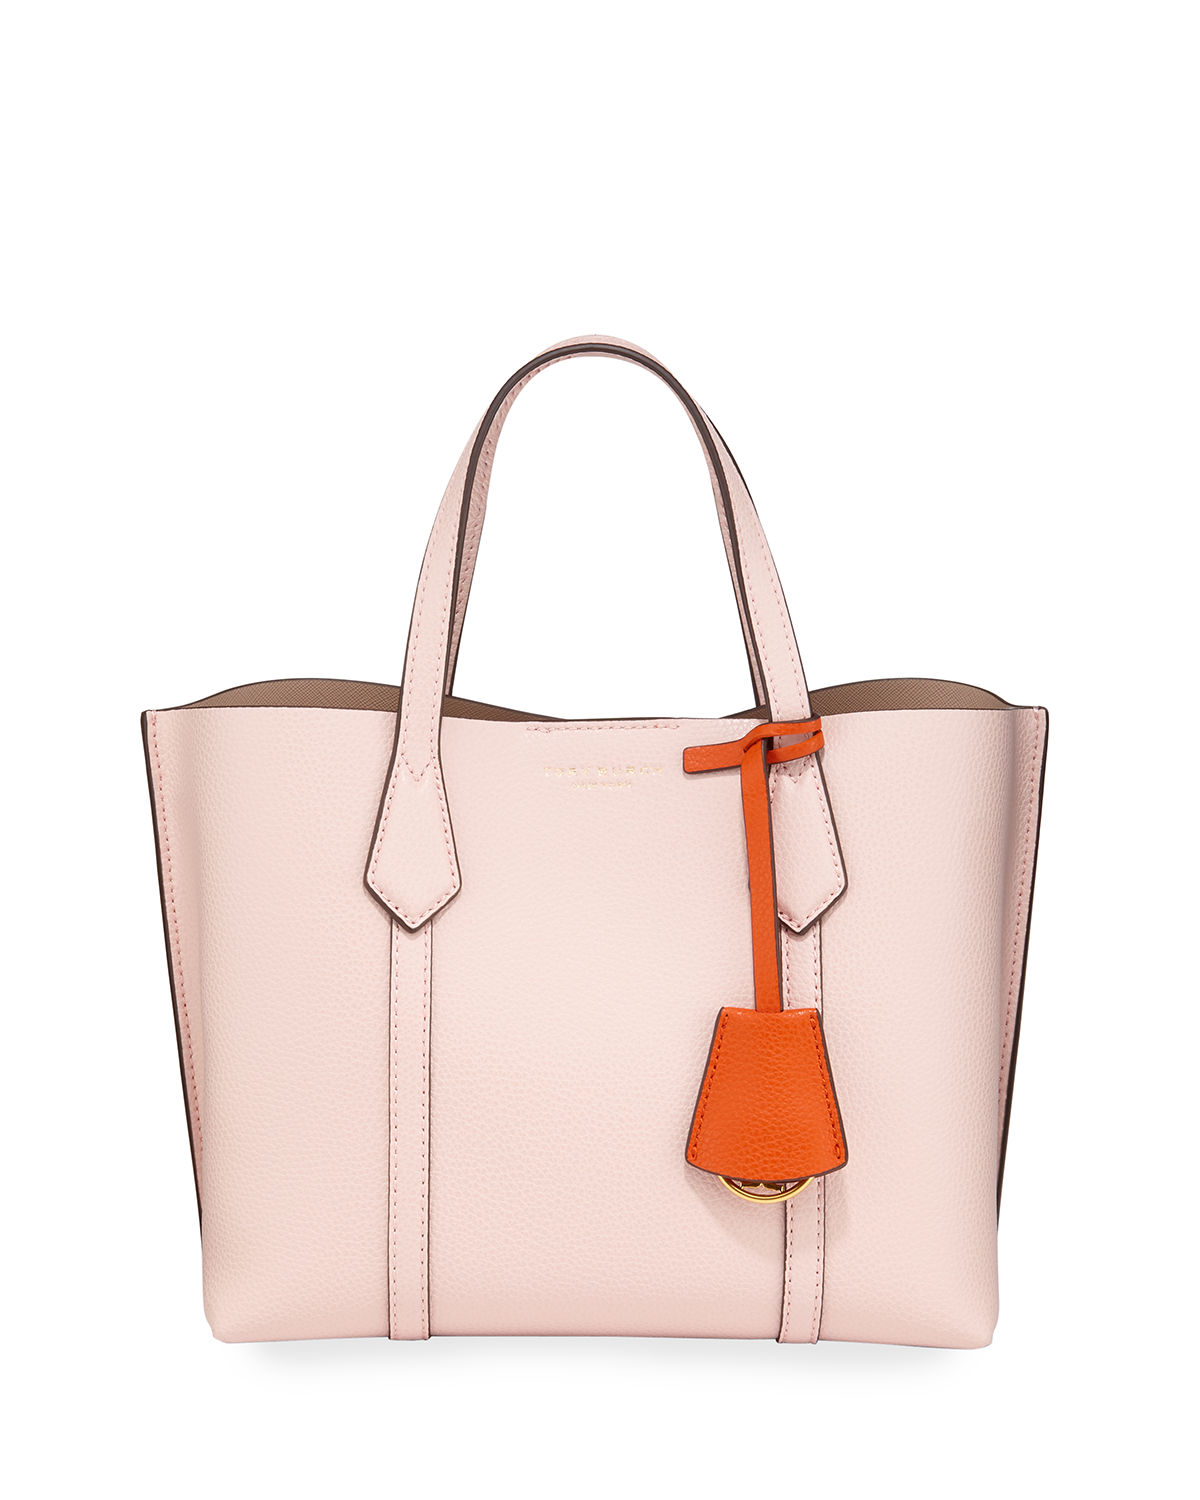 Tory Burch Perry Small Colorblock Tote